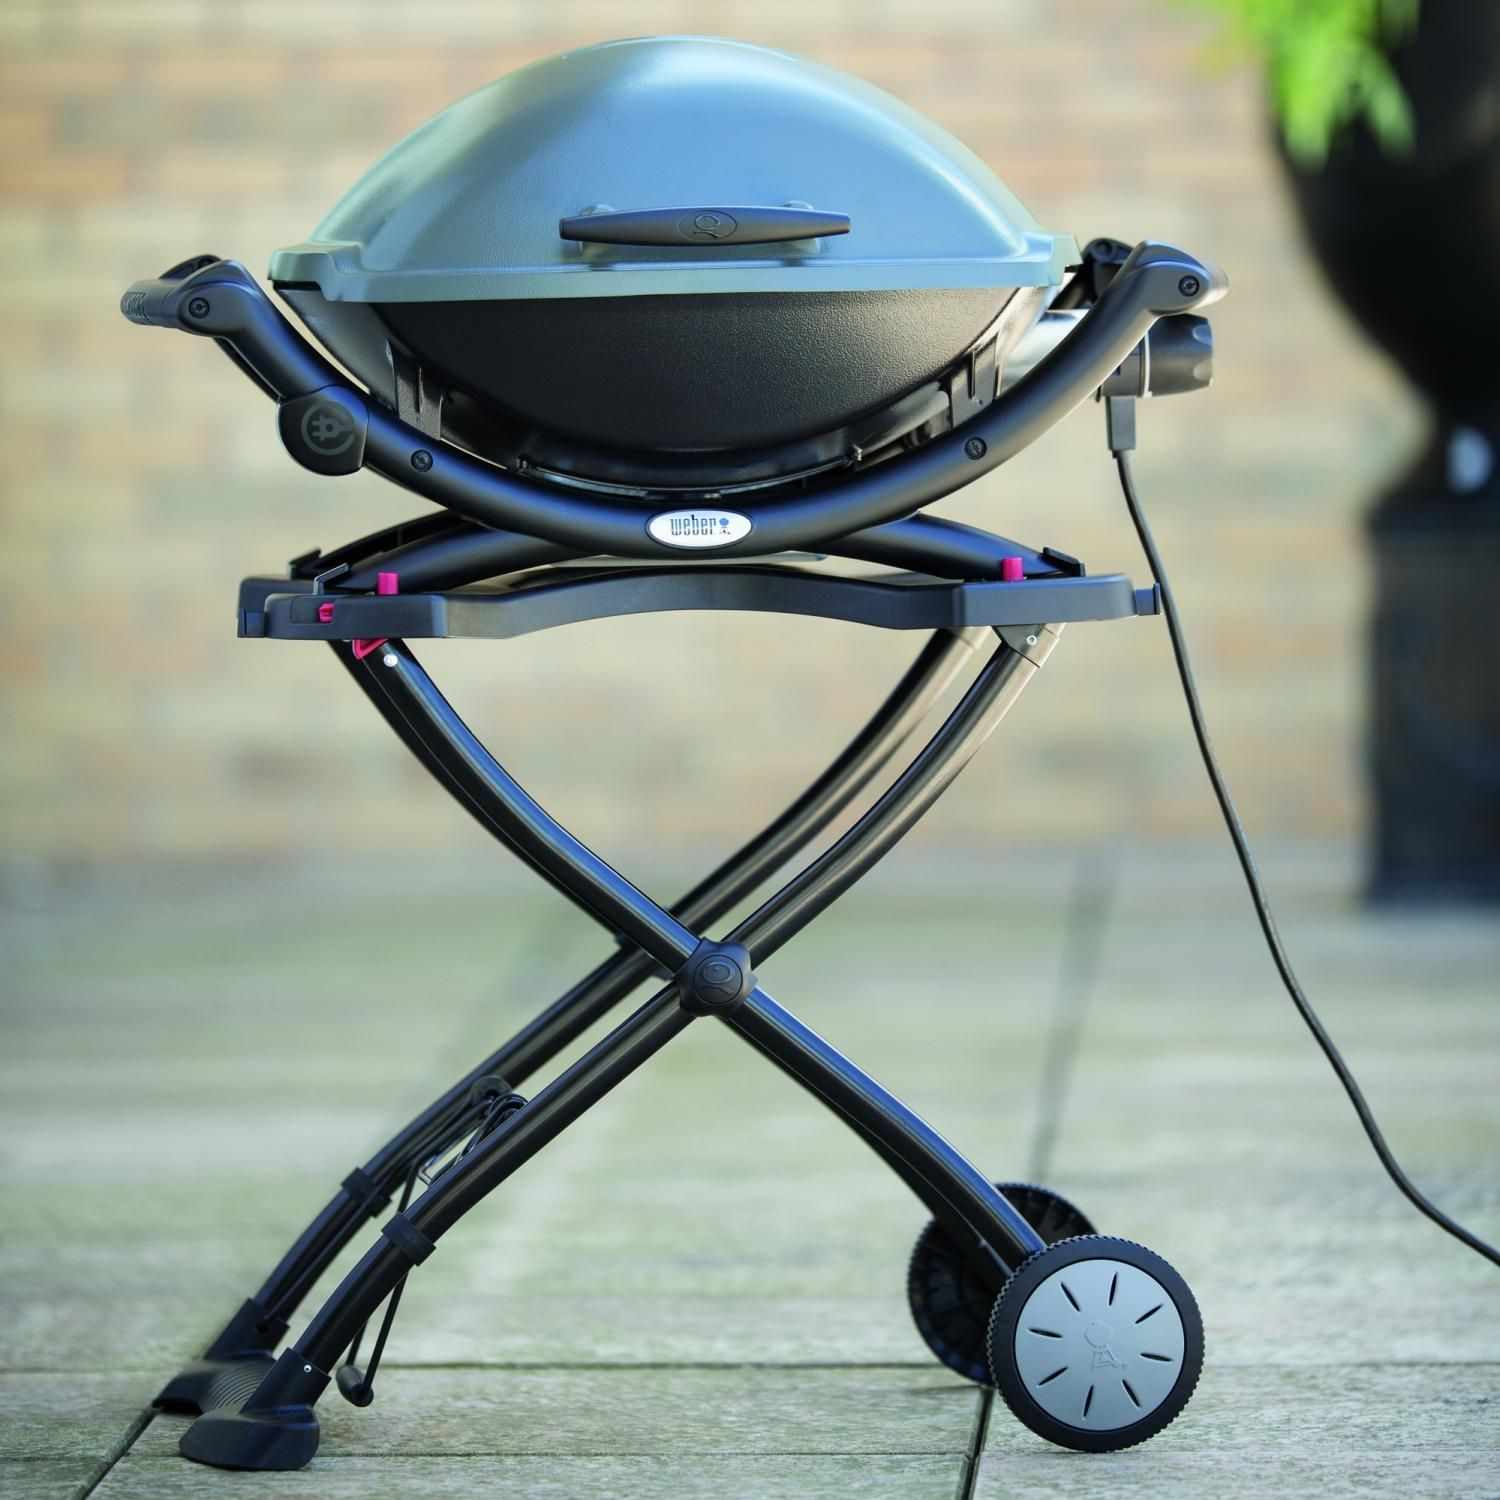 Weber Q 2400 Portable Electric Grill Shown On Optional Cart